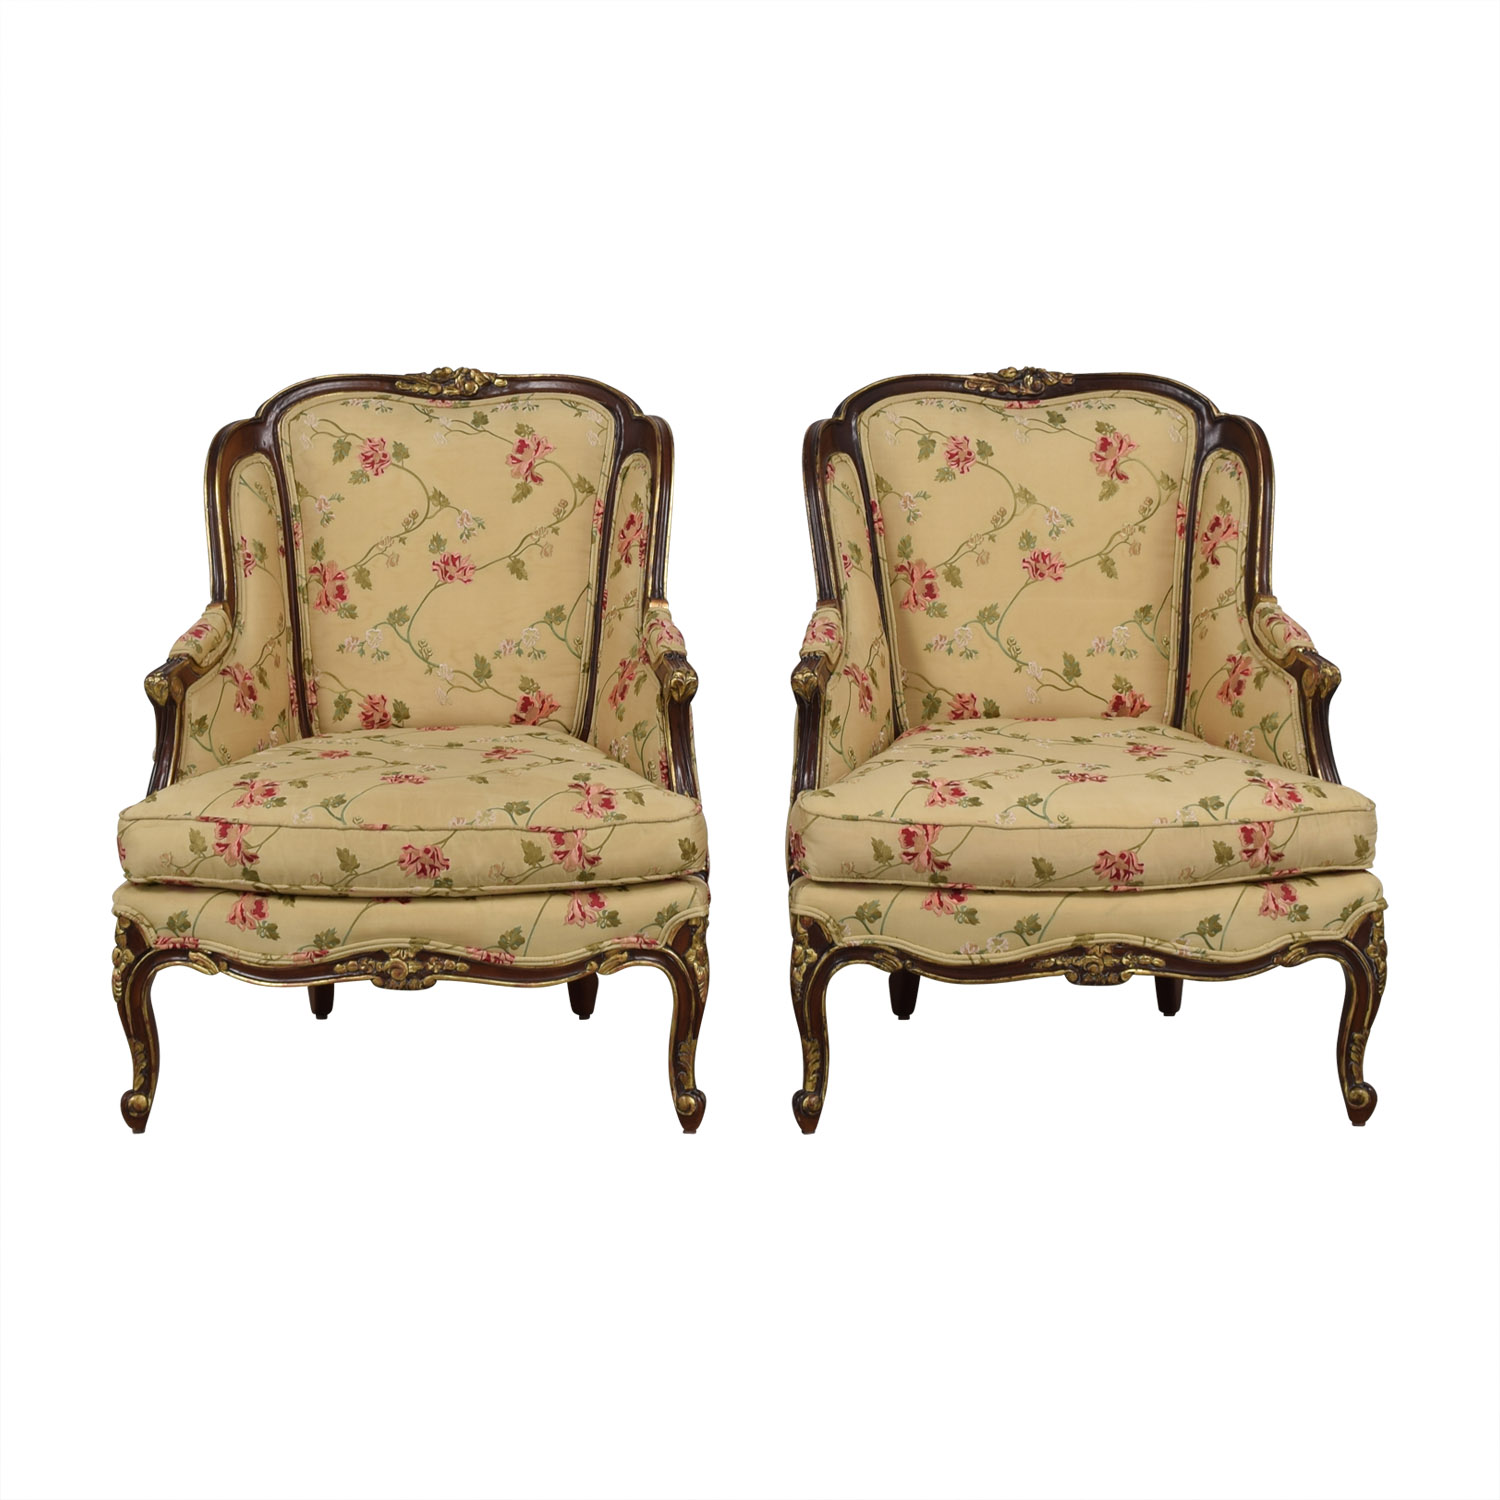 Century Furniture Century Furniture Louis Beige Floral Wing Accent Chairs for sale